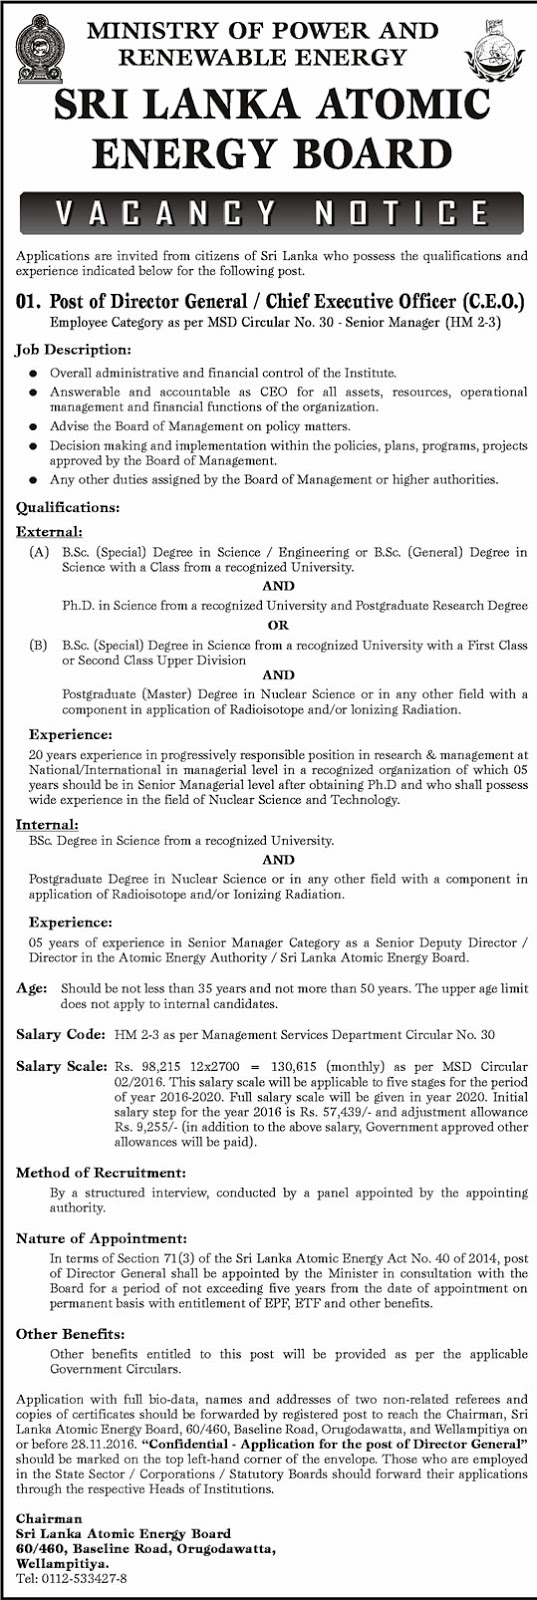 director general chief executive officer c e o sri lanka sri lankan government job vacancies at sri lanka atomic energy board ministry of power and